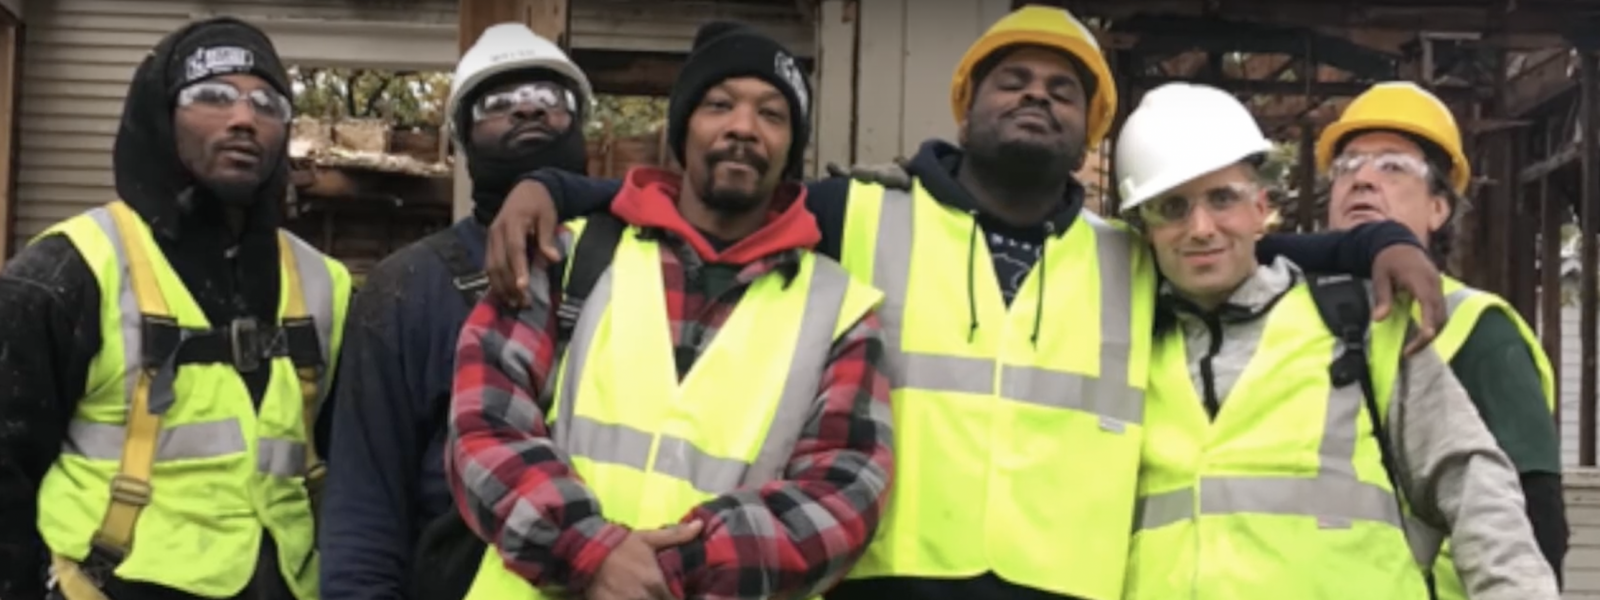 group of men in high-visibility vests and hardhats gathered together with arms around one another